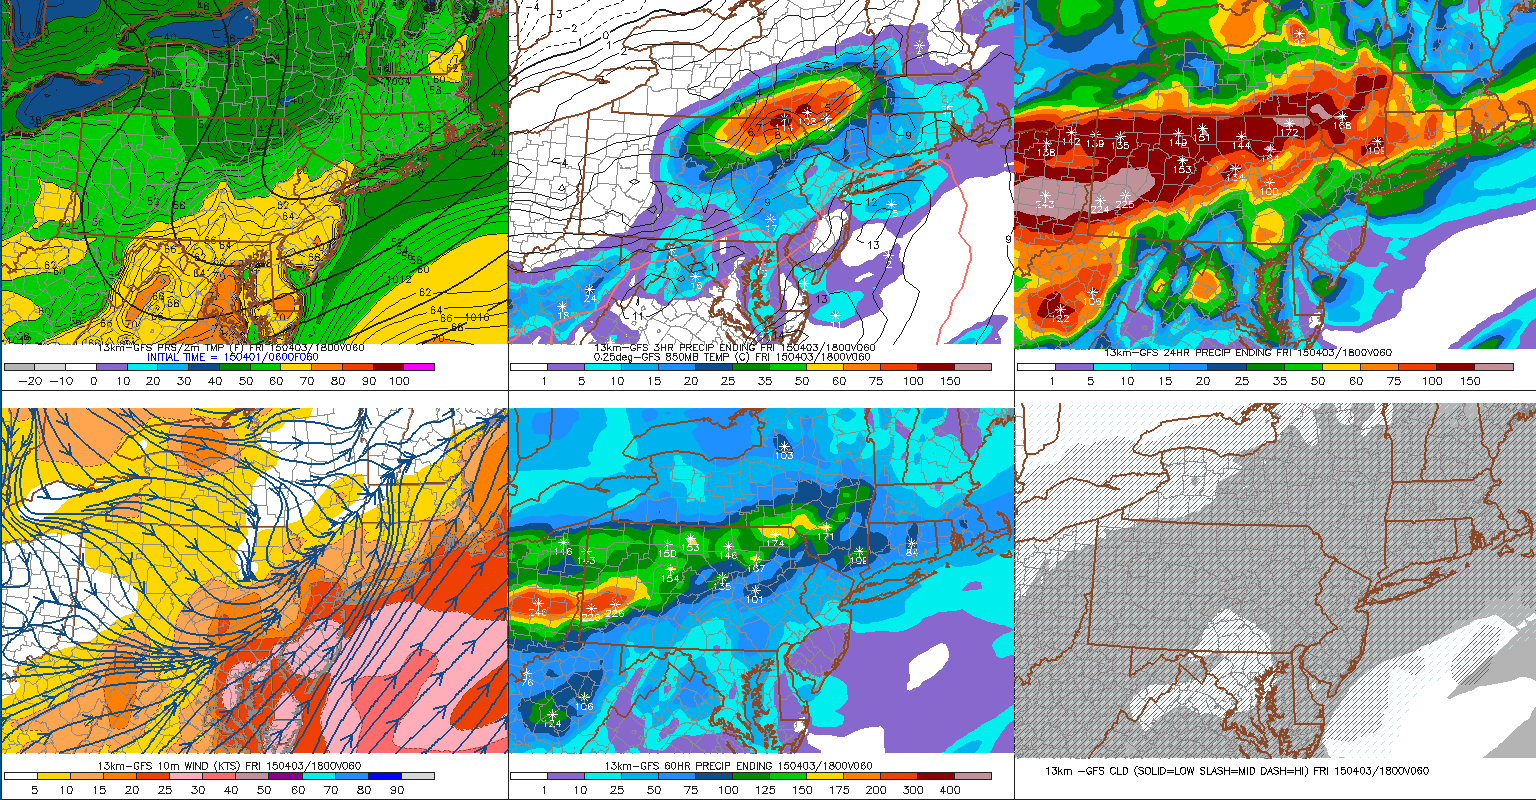 GFS model showing high temperatures in the 60's on Friday with showers and thunderstorms near the area.